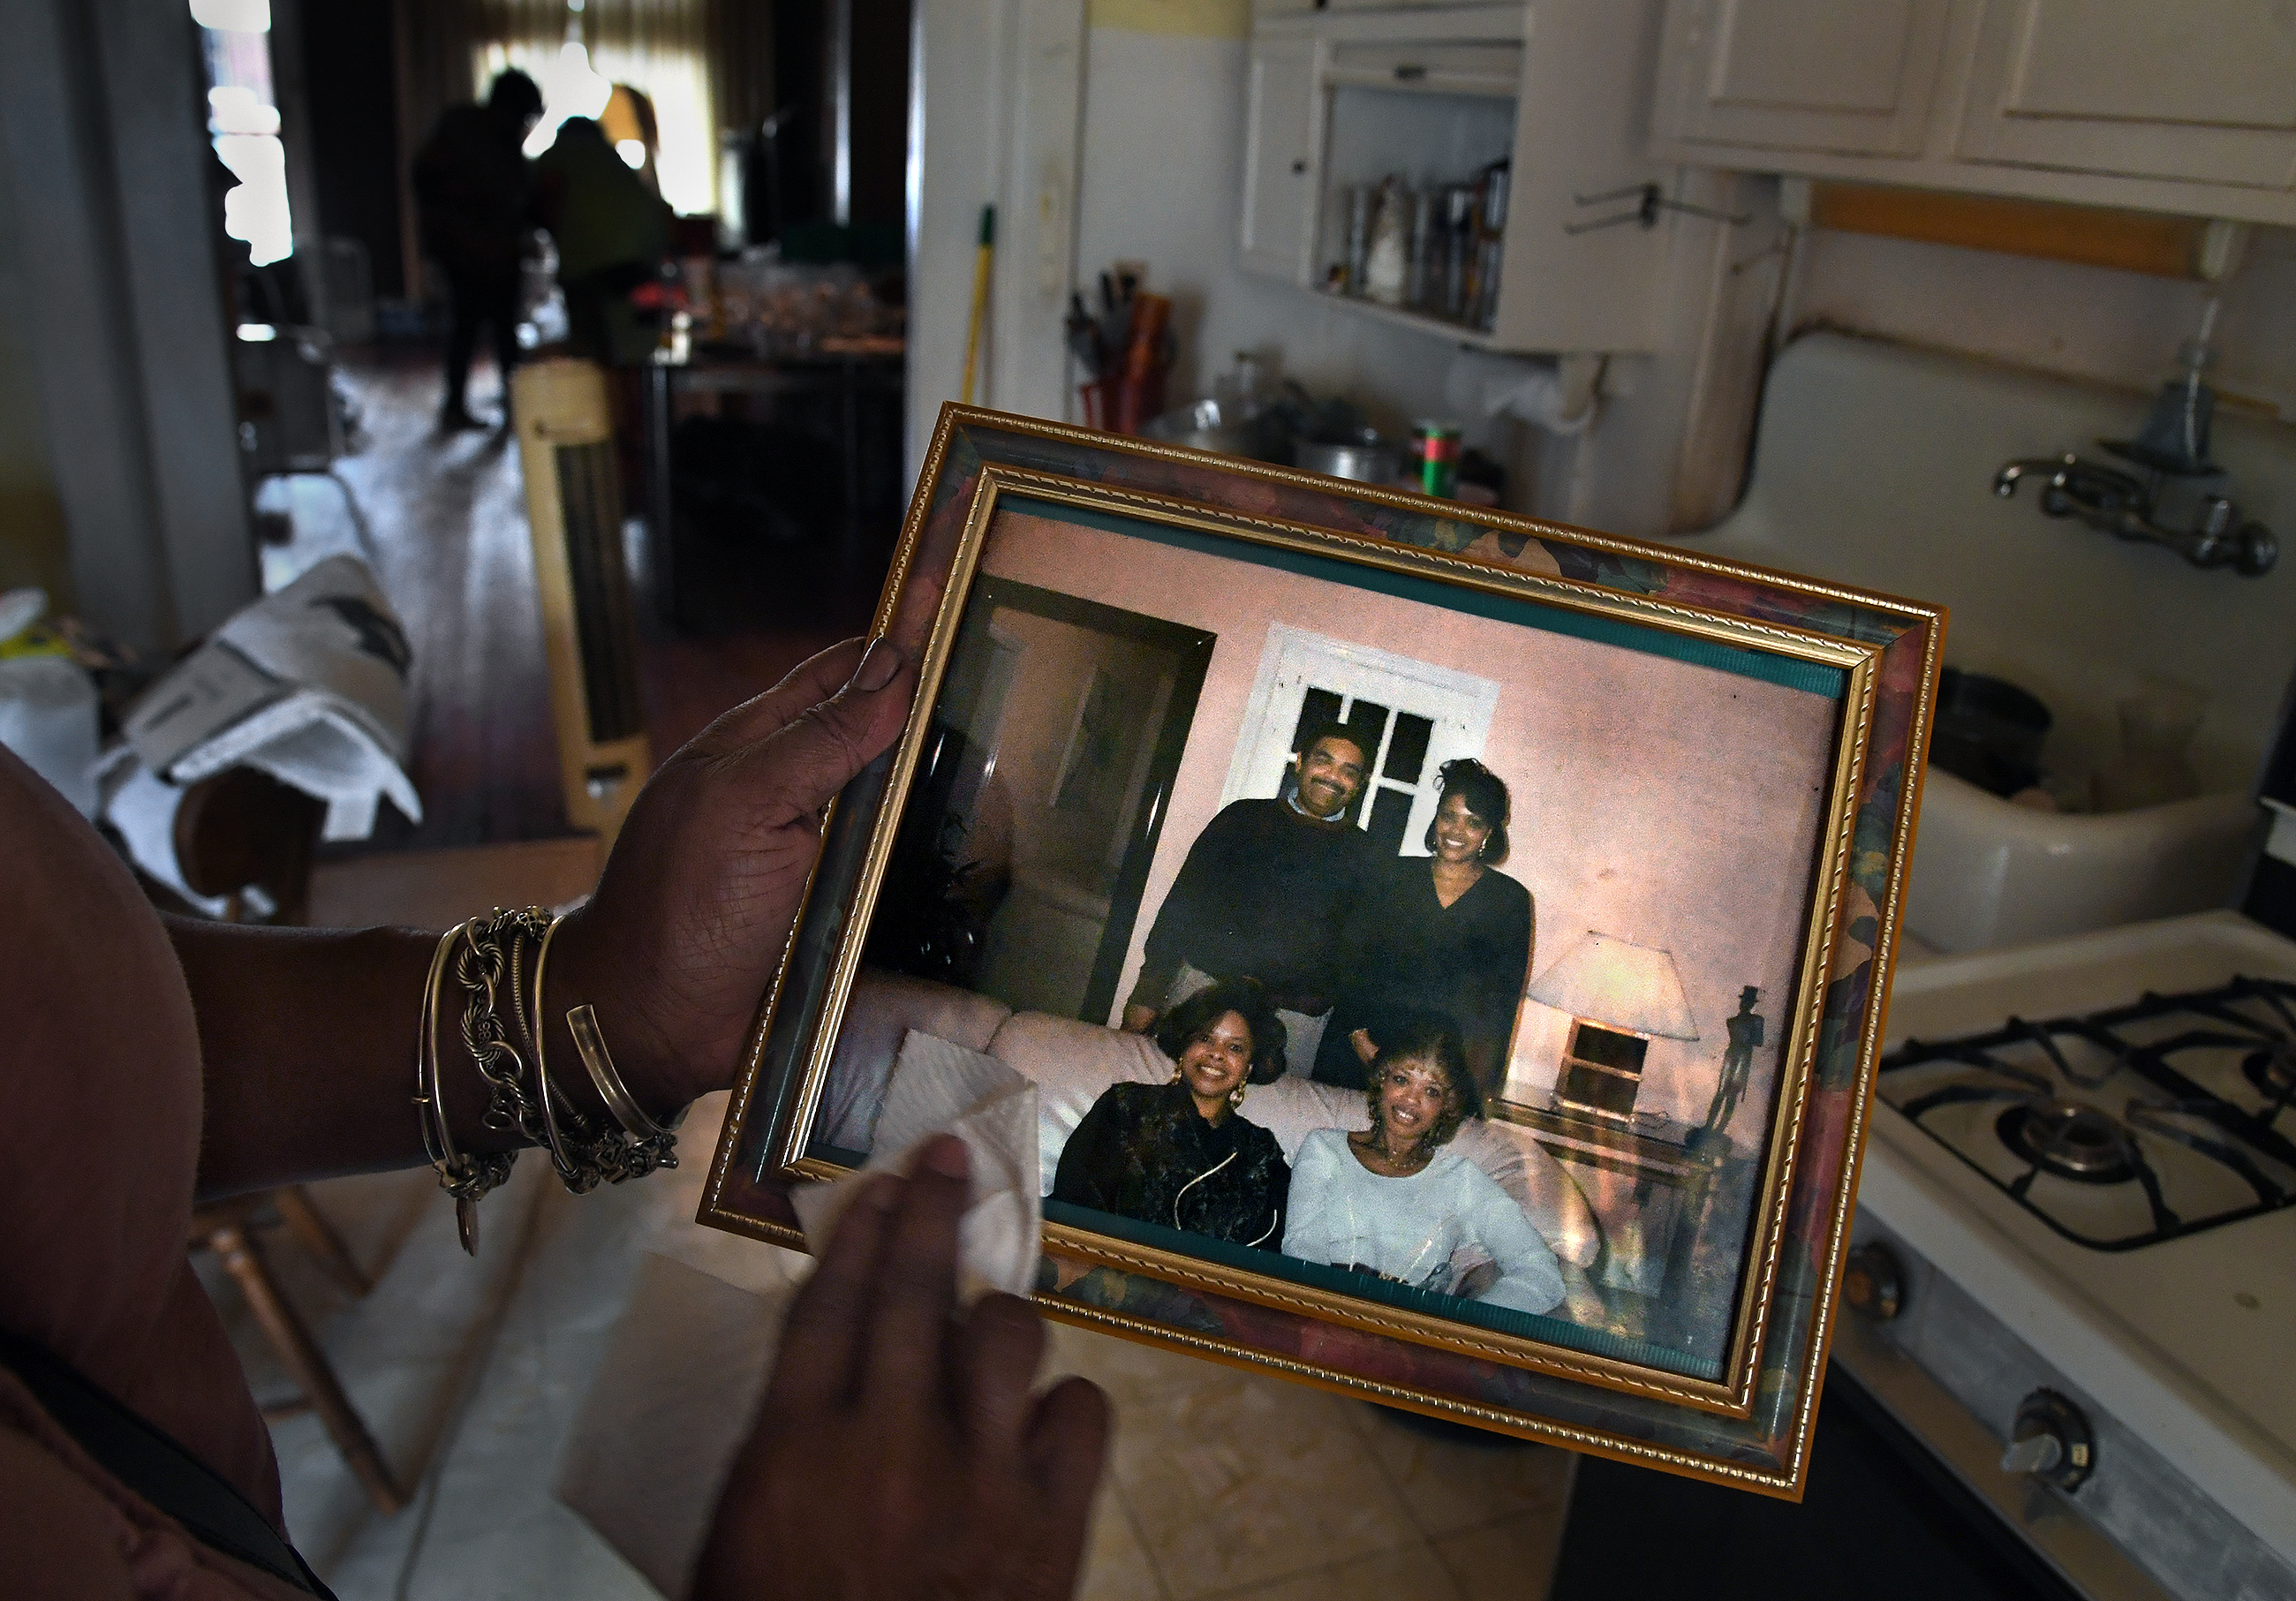 Kimberly Ware cleans a family photo she found at the house of her deceased grandfather, Wadell Tate, in Baltimore on July 27, 2017.